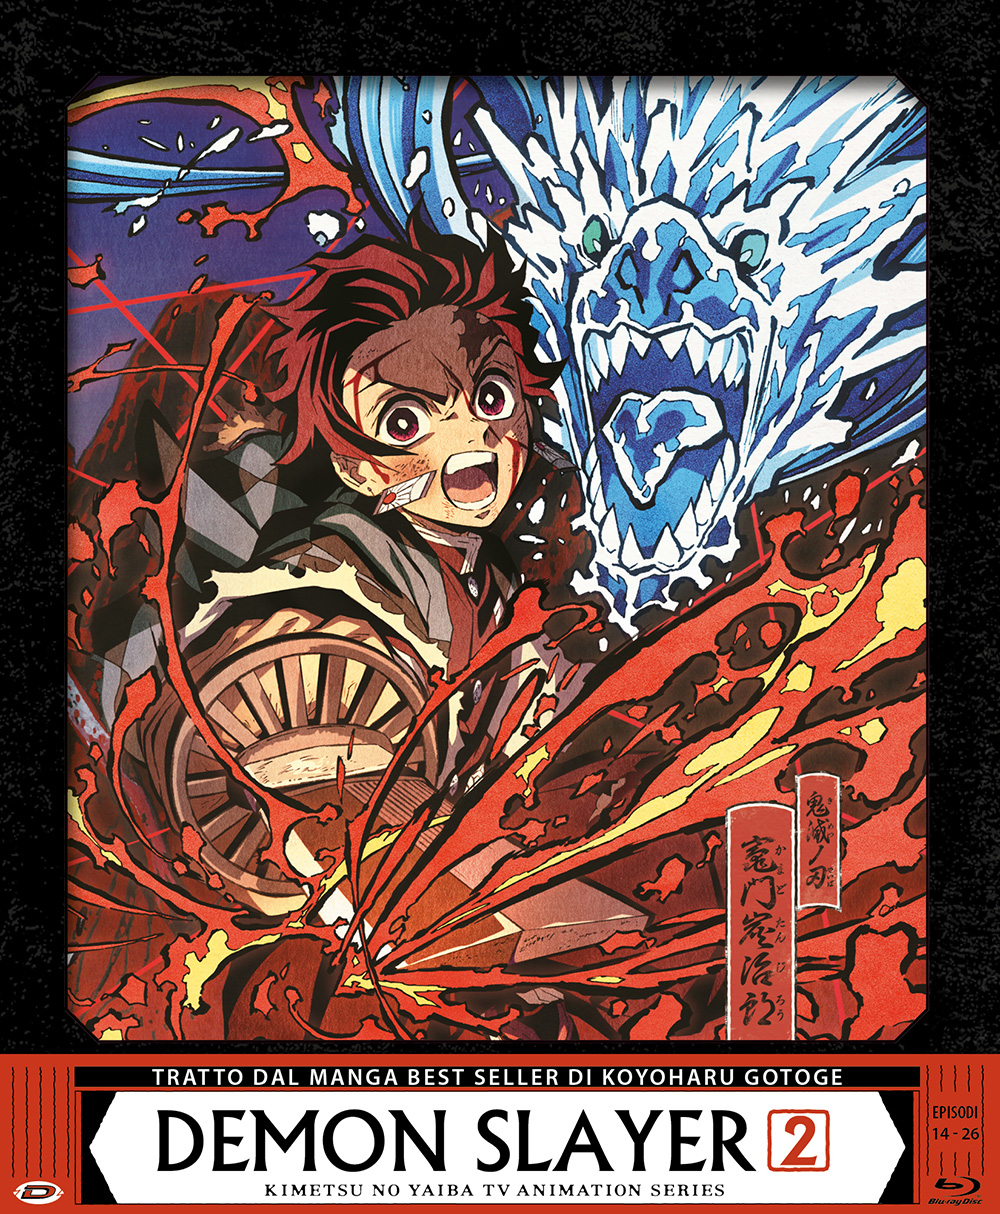 COF.DEMON SLAYER - LIMITED EDITION BOX #02 (EPS 14-26) (3 BLU-RA